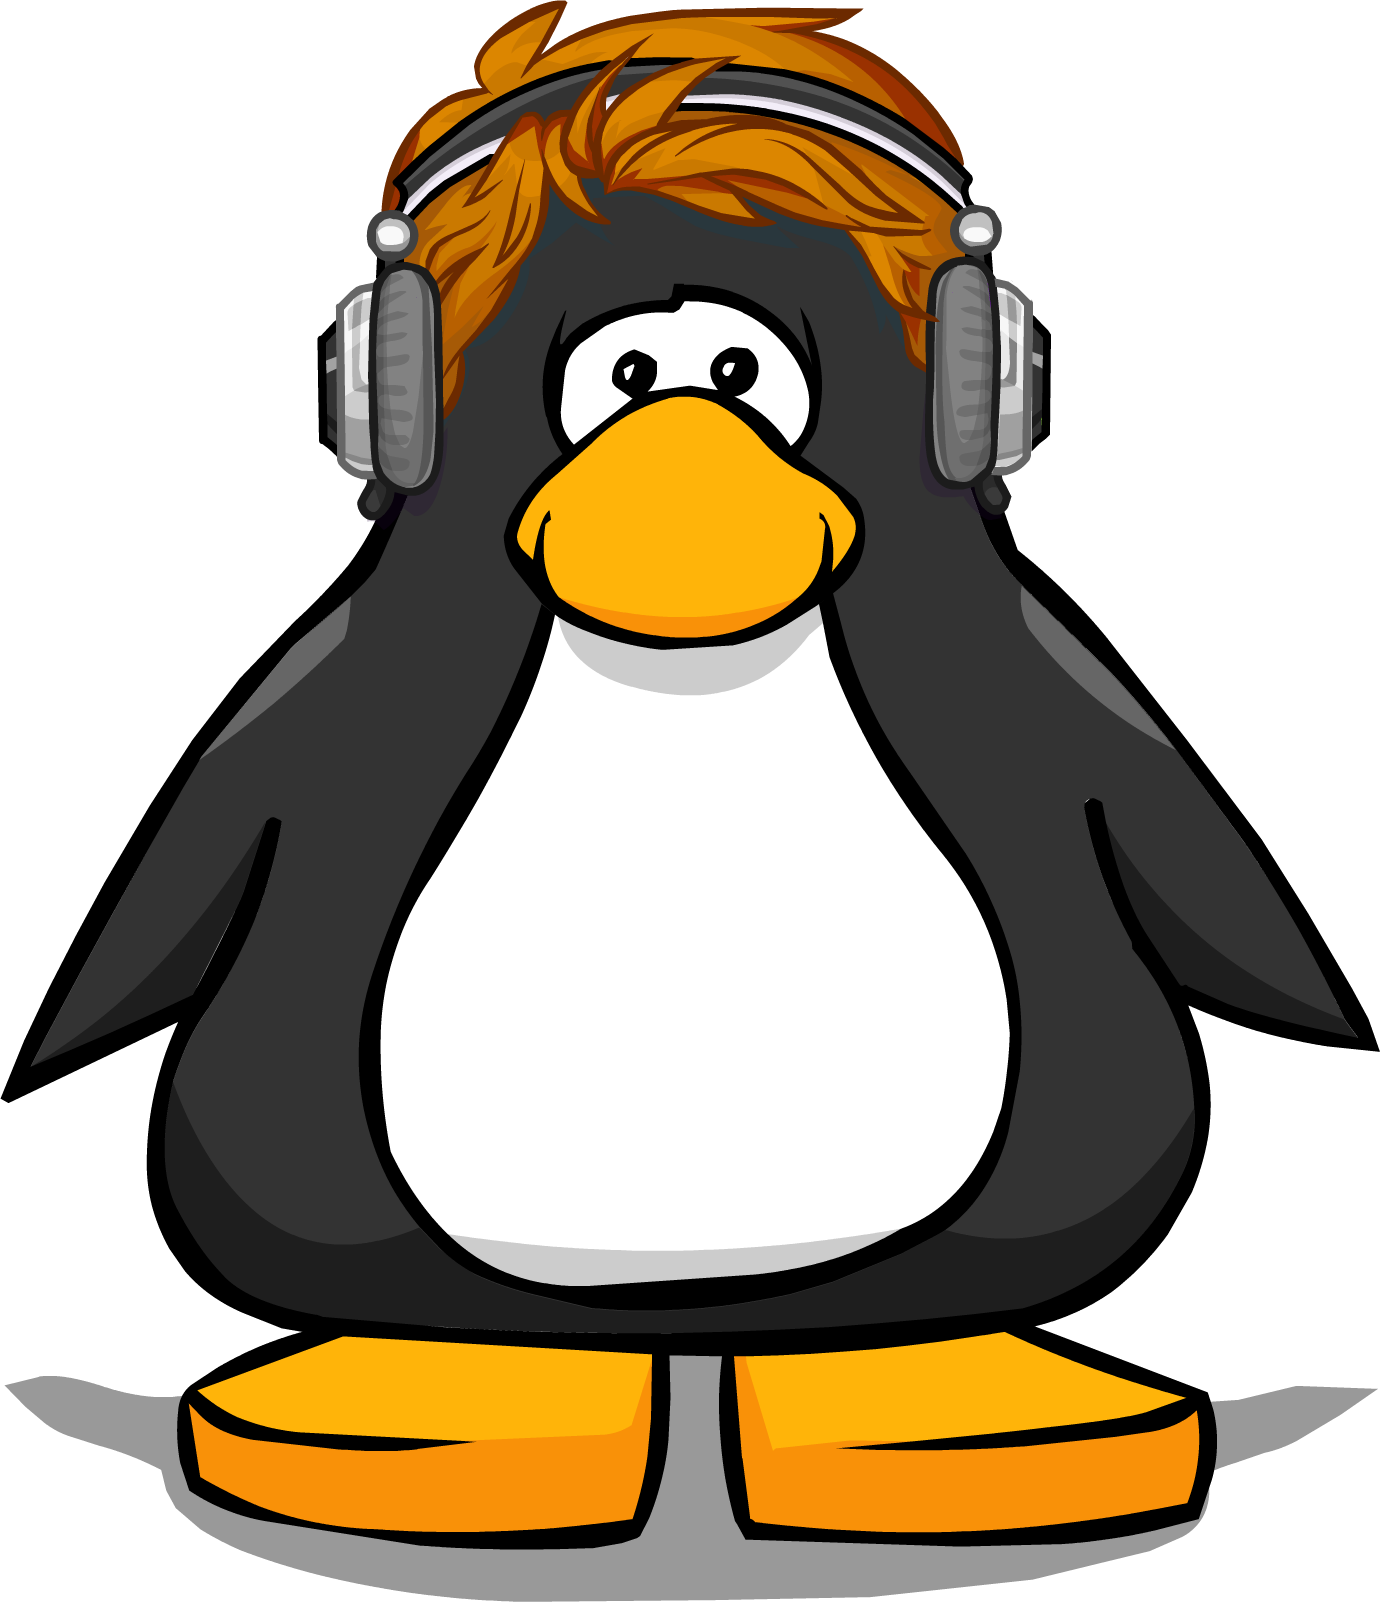 Image redhead from a. Headphones clipart comic